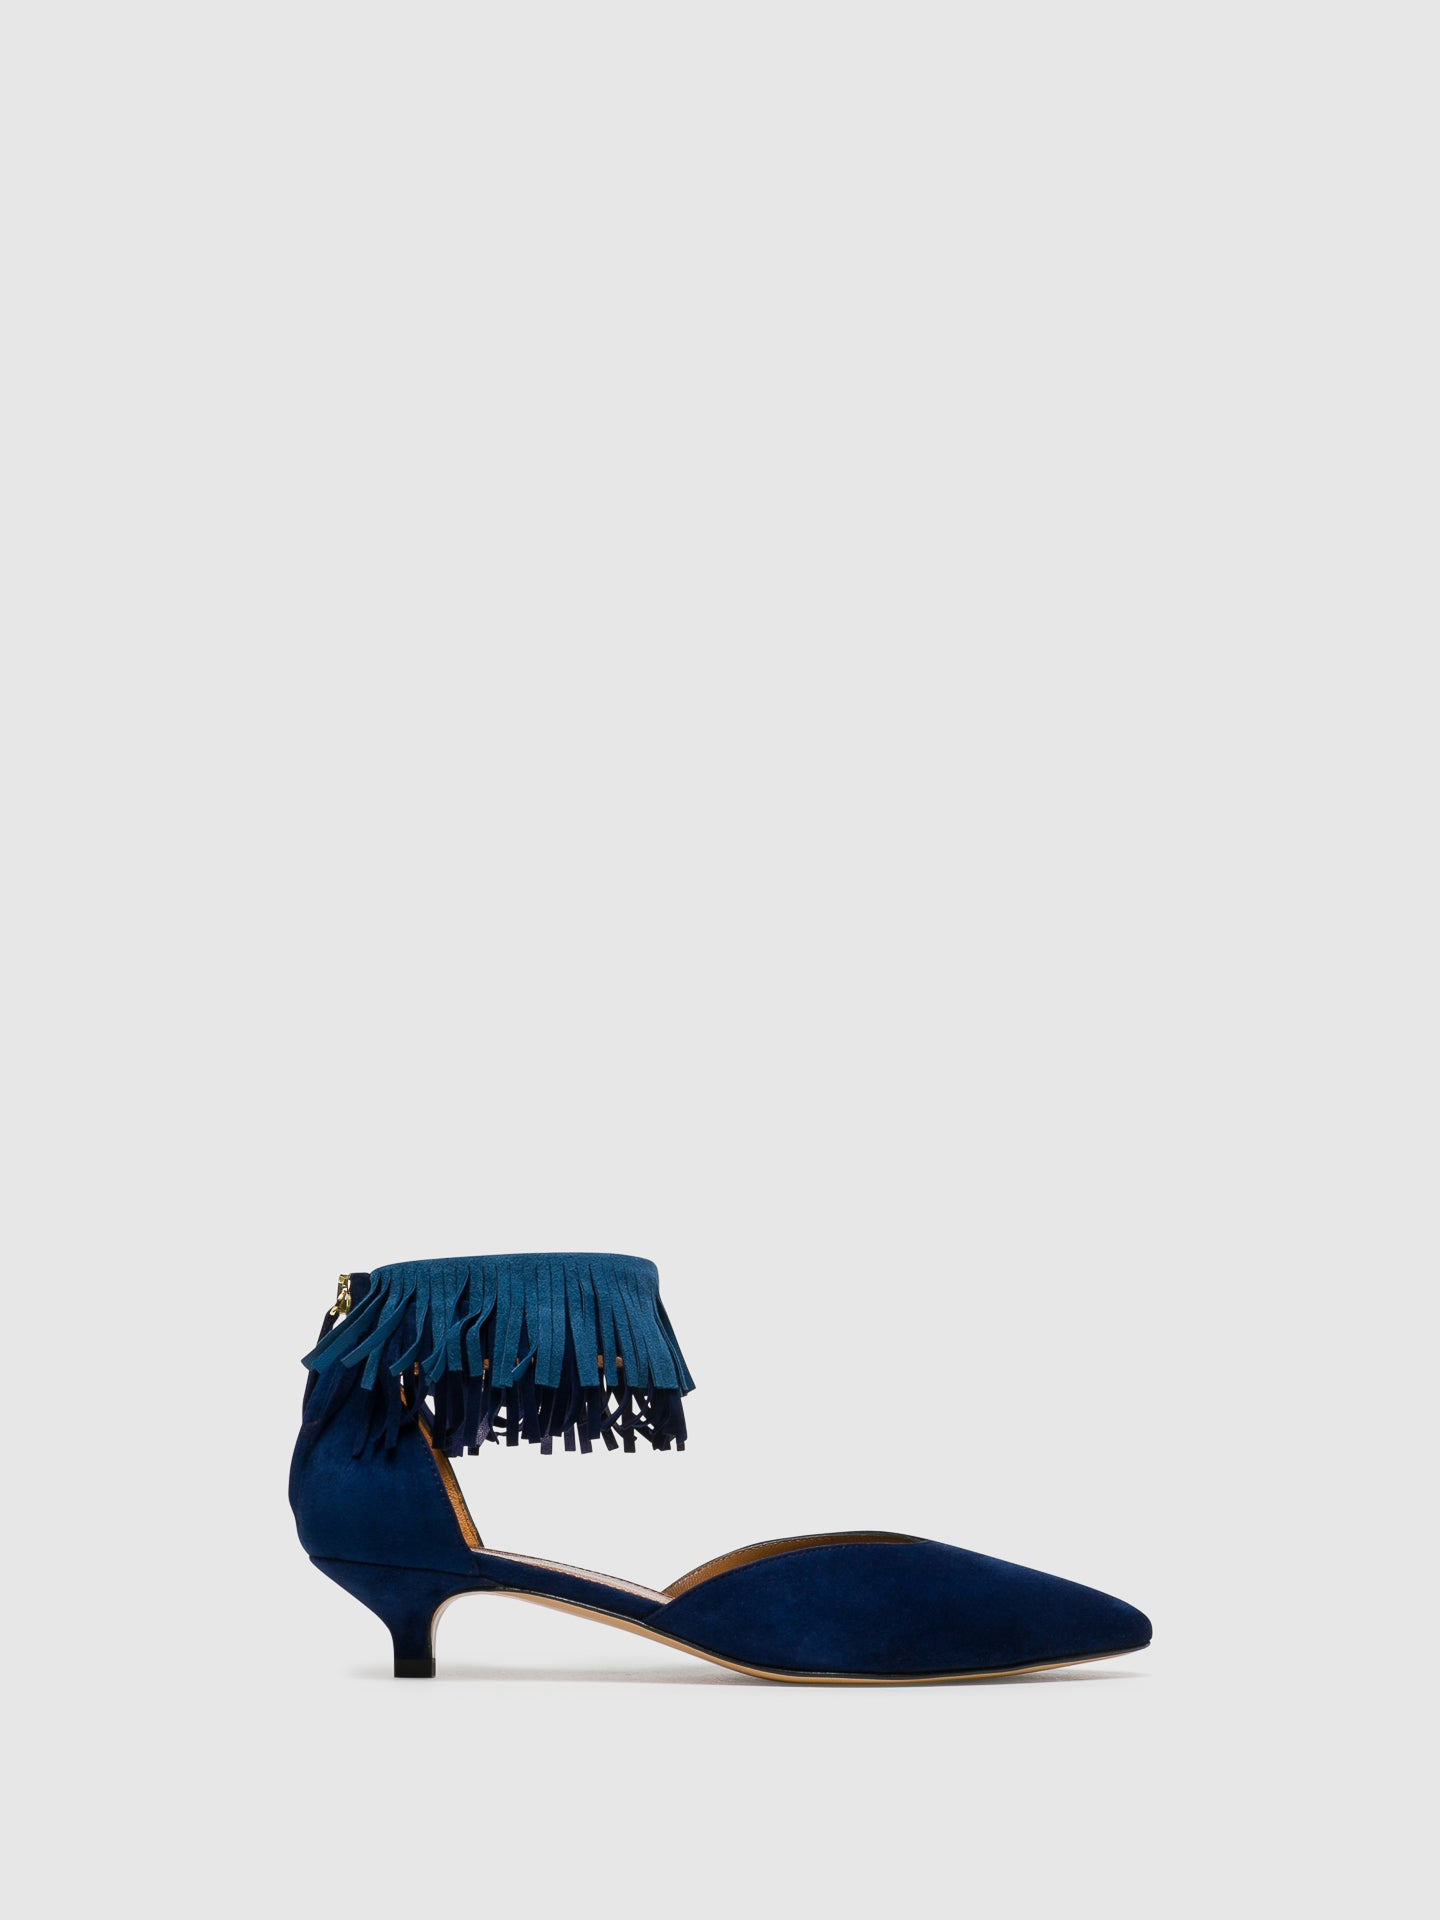 Palazzo VII Blue Kitten Heel Shoes